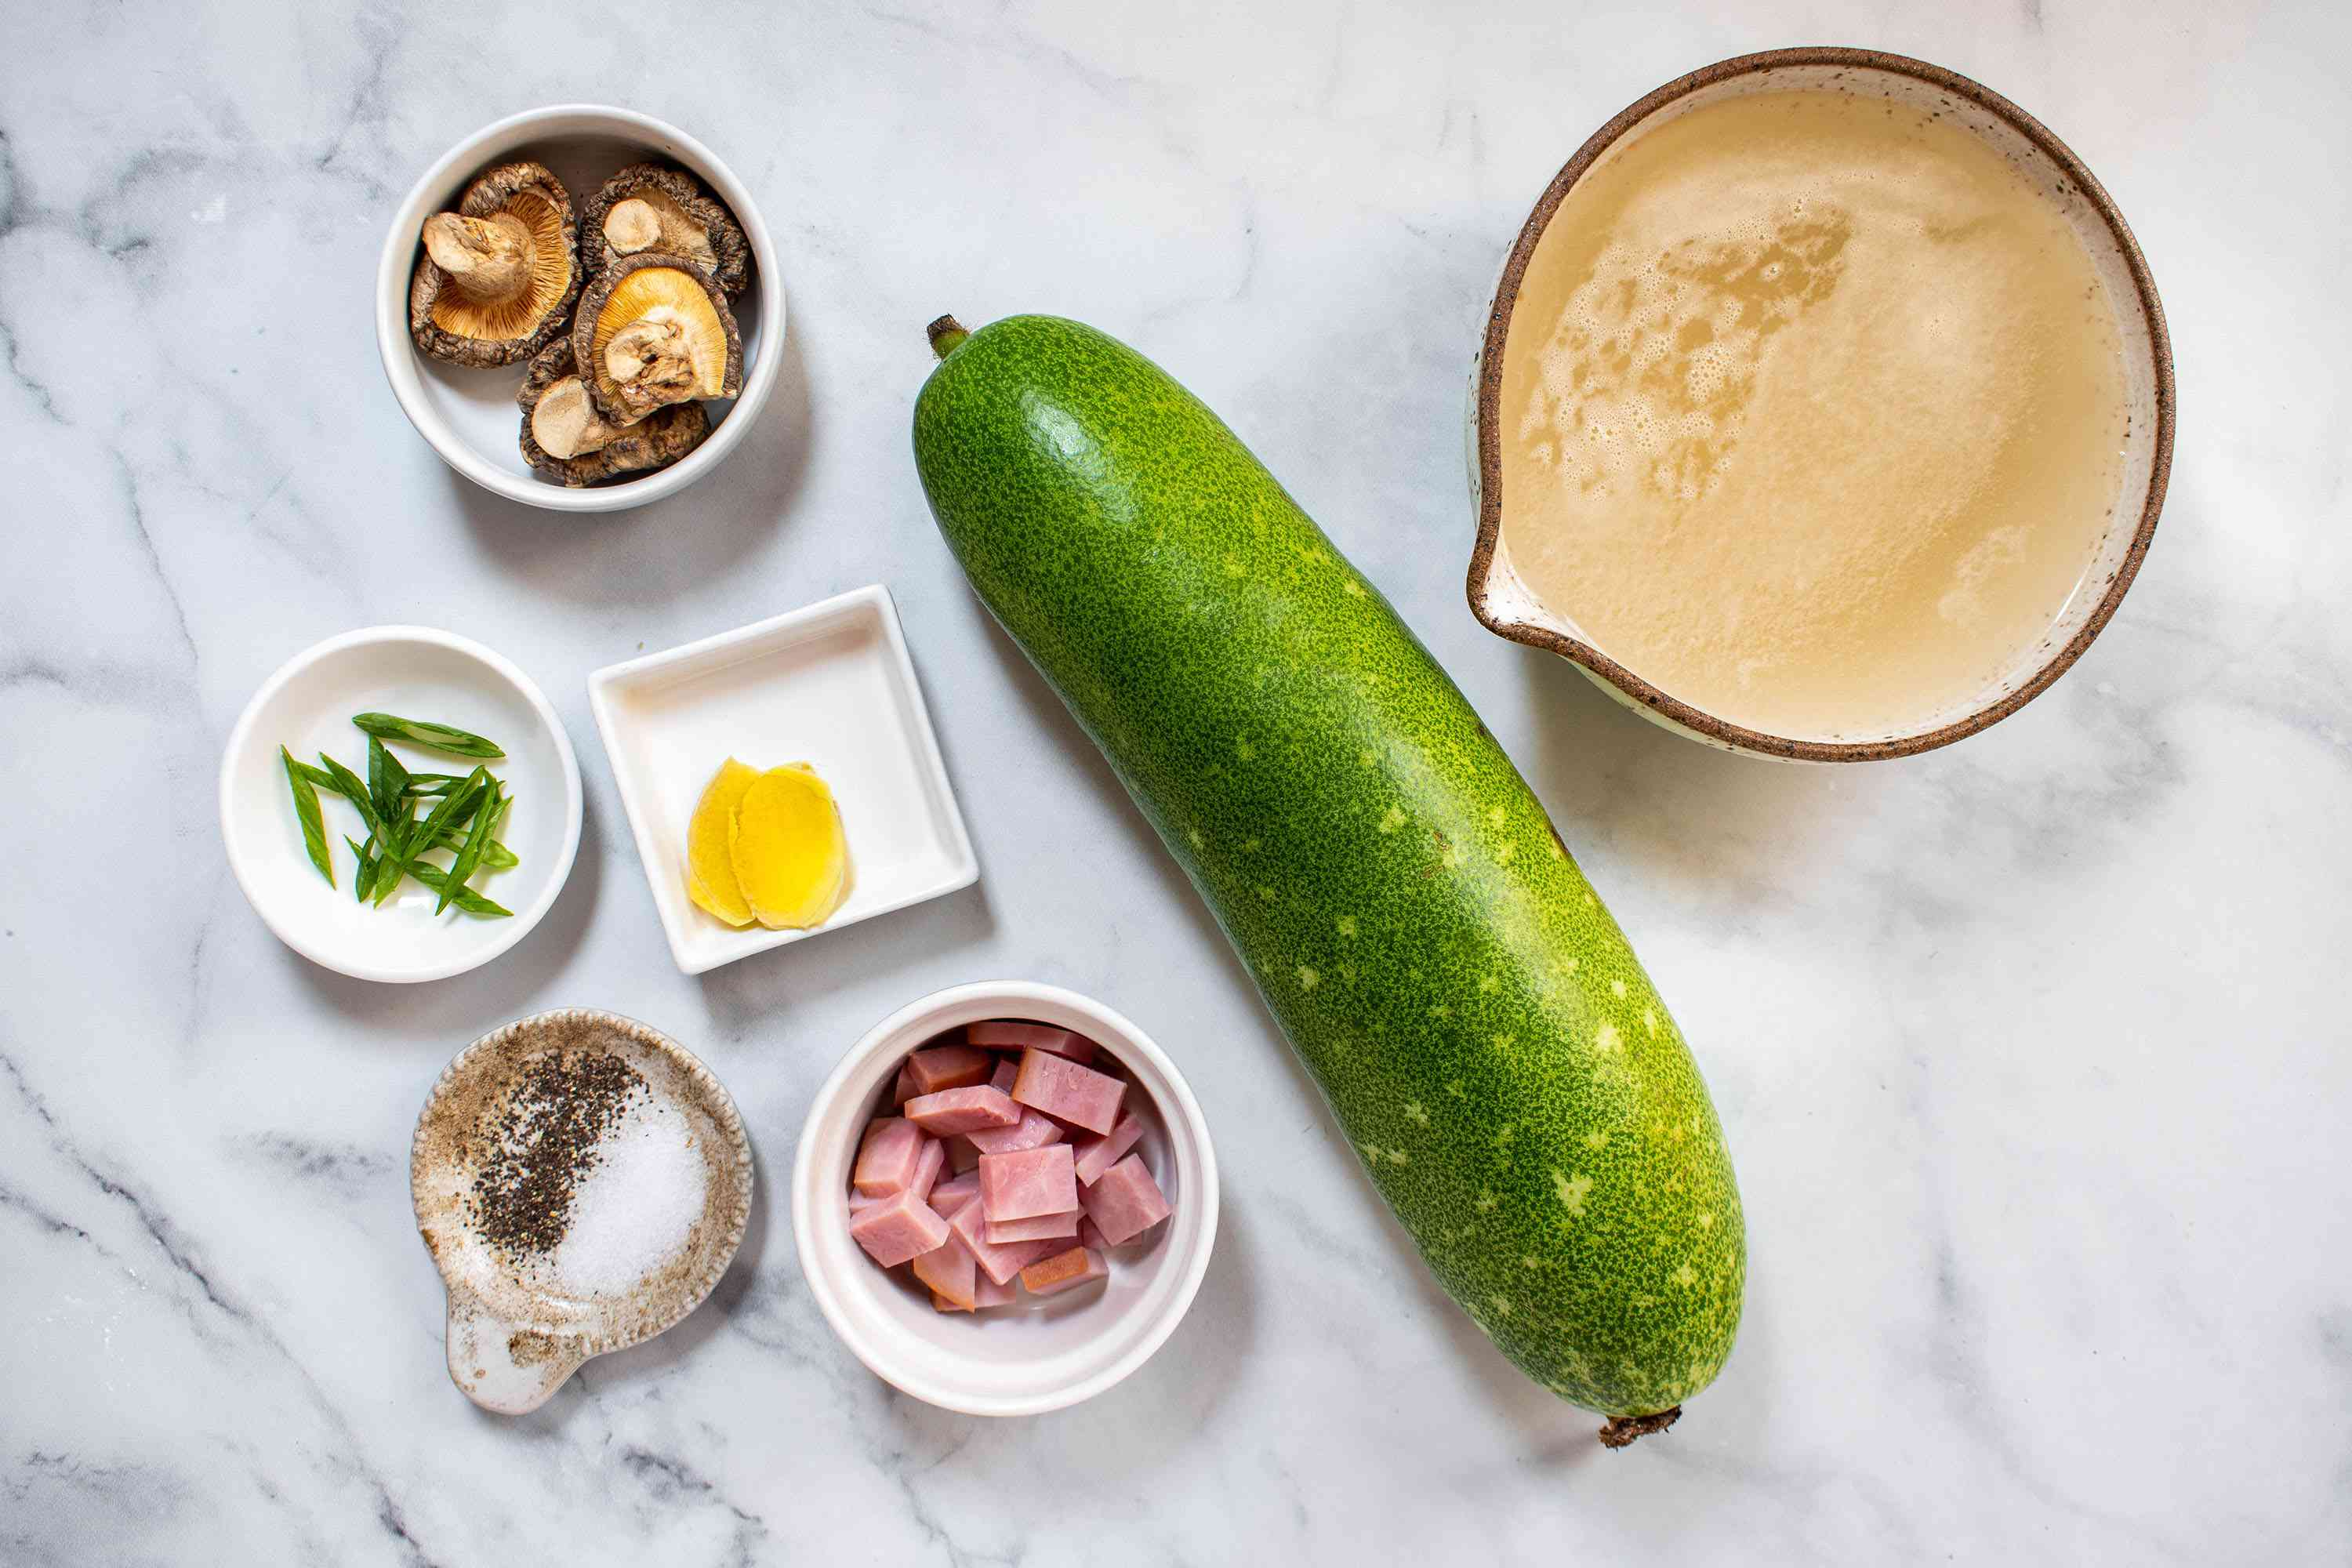 Chinese Winter Melon Soup ingredients